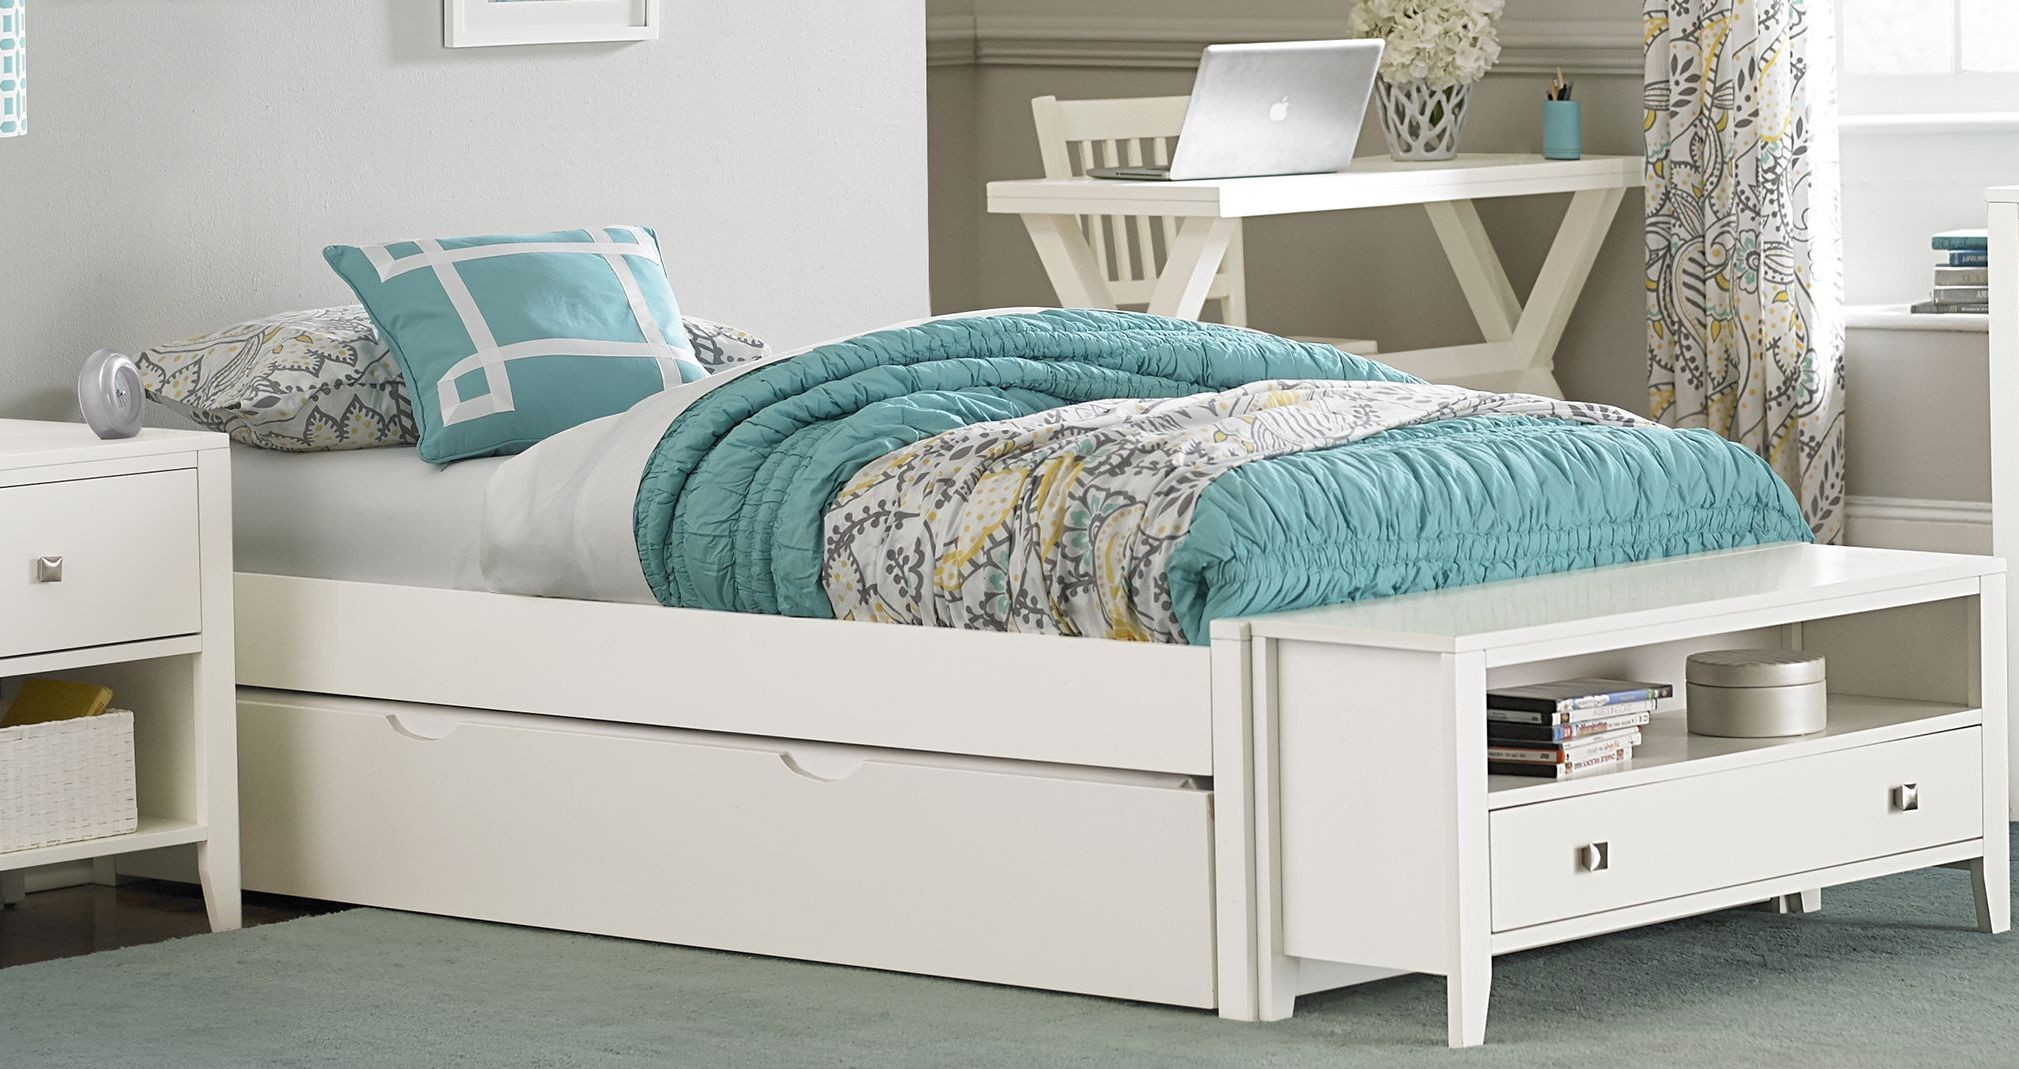 pulse white full platform bed with trundle from ne kids 12921 | 33002nt flplatform trun wh p bed nekids